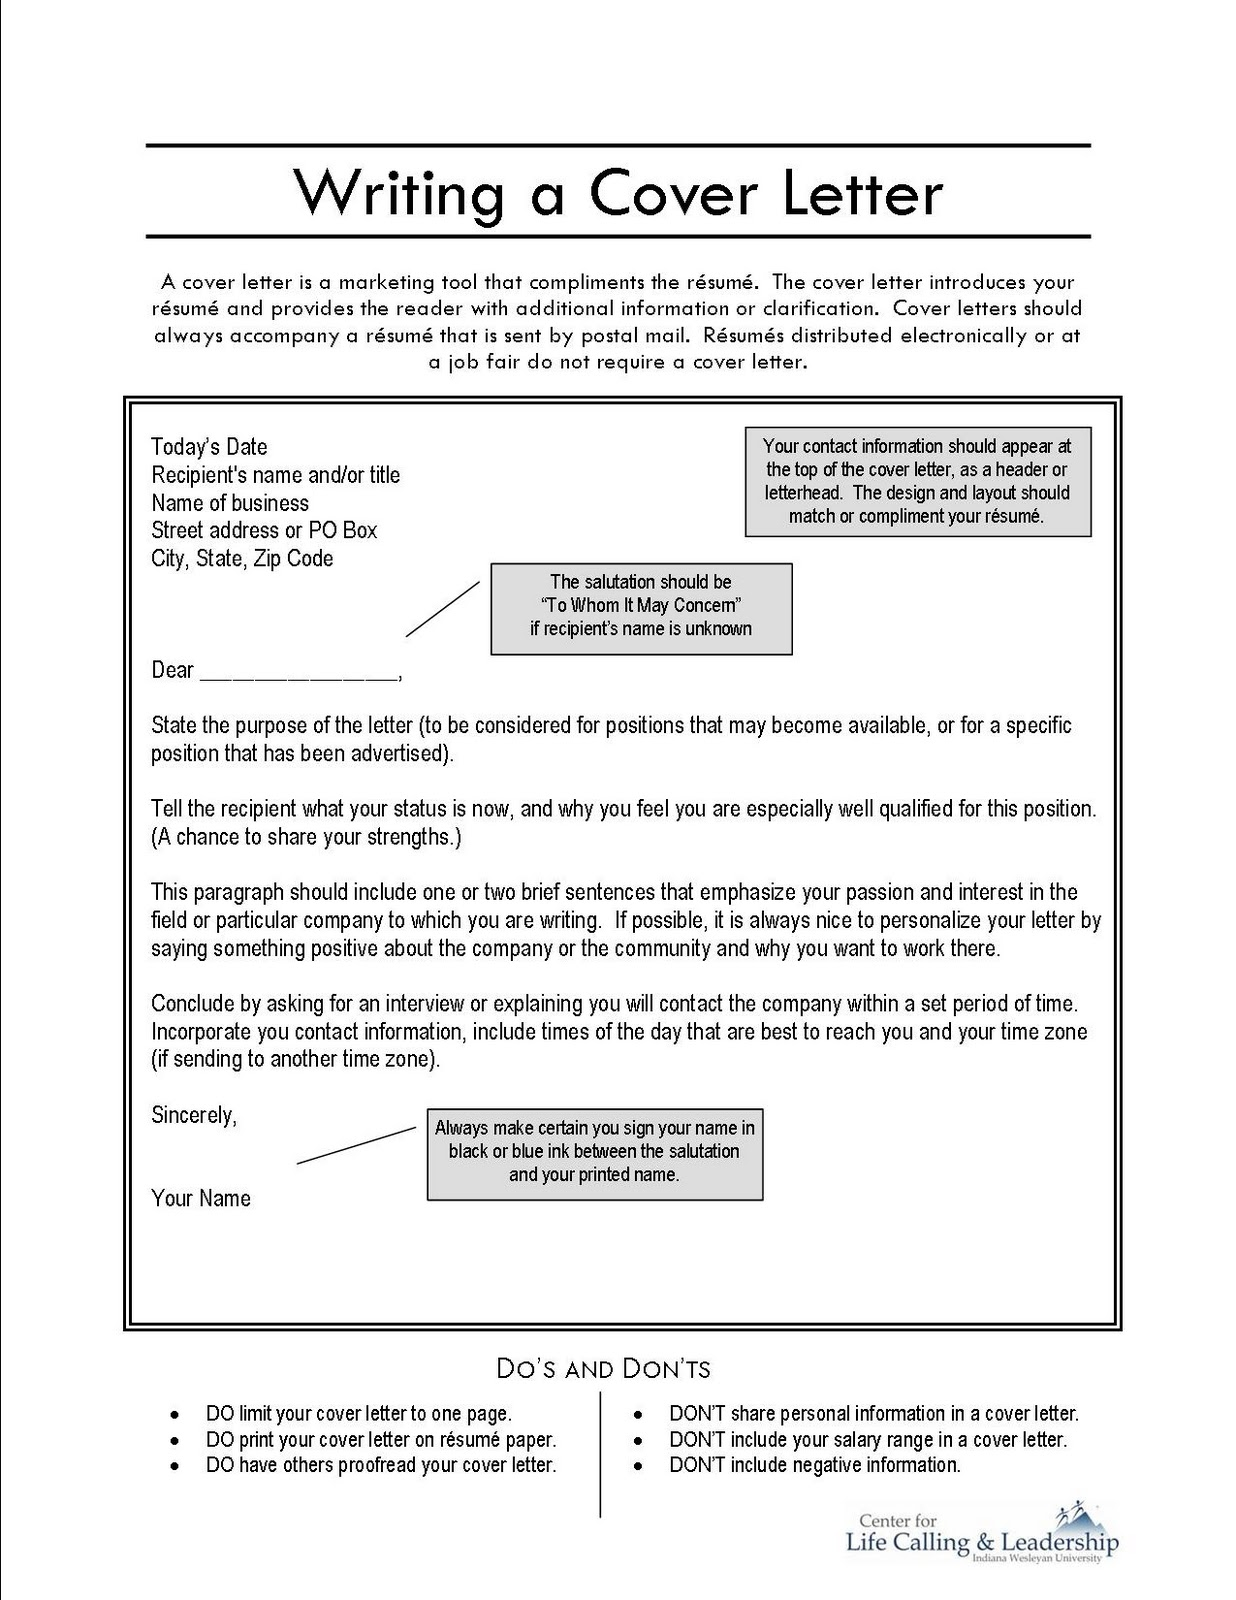 Cover Letter Template For Kindergarten Teacher Job Description Kindergarten  Teacher Assistant Resume Samples Kindergarten Teacher Resume